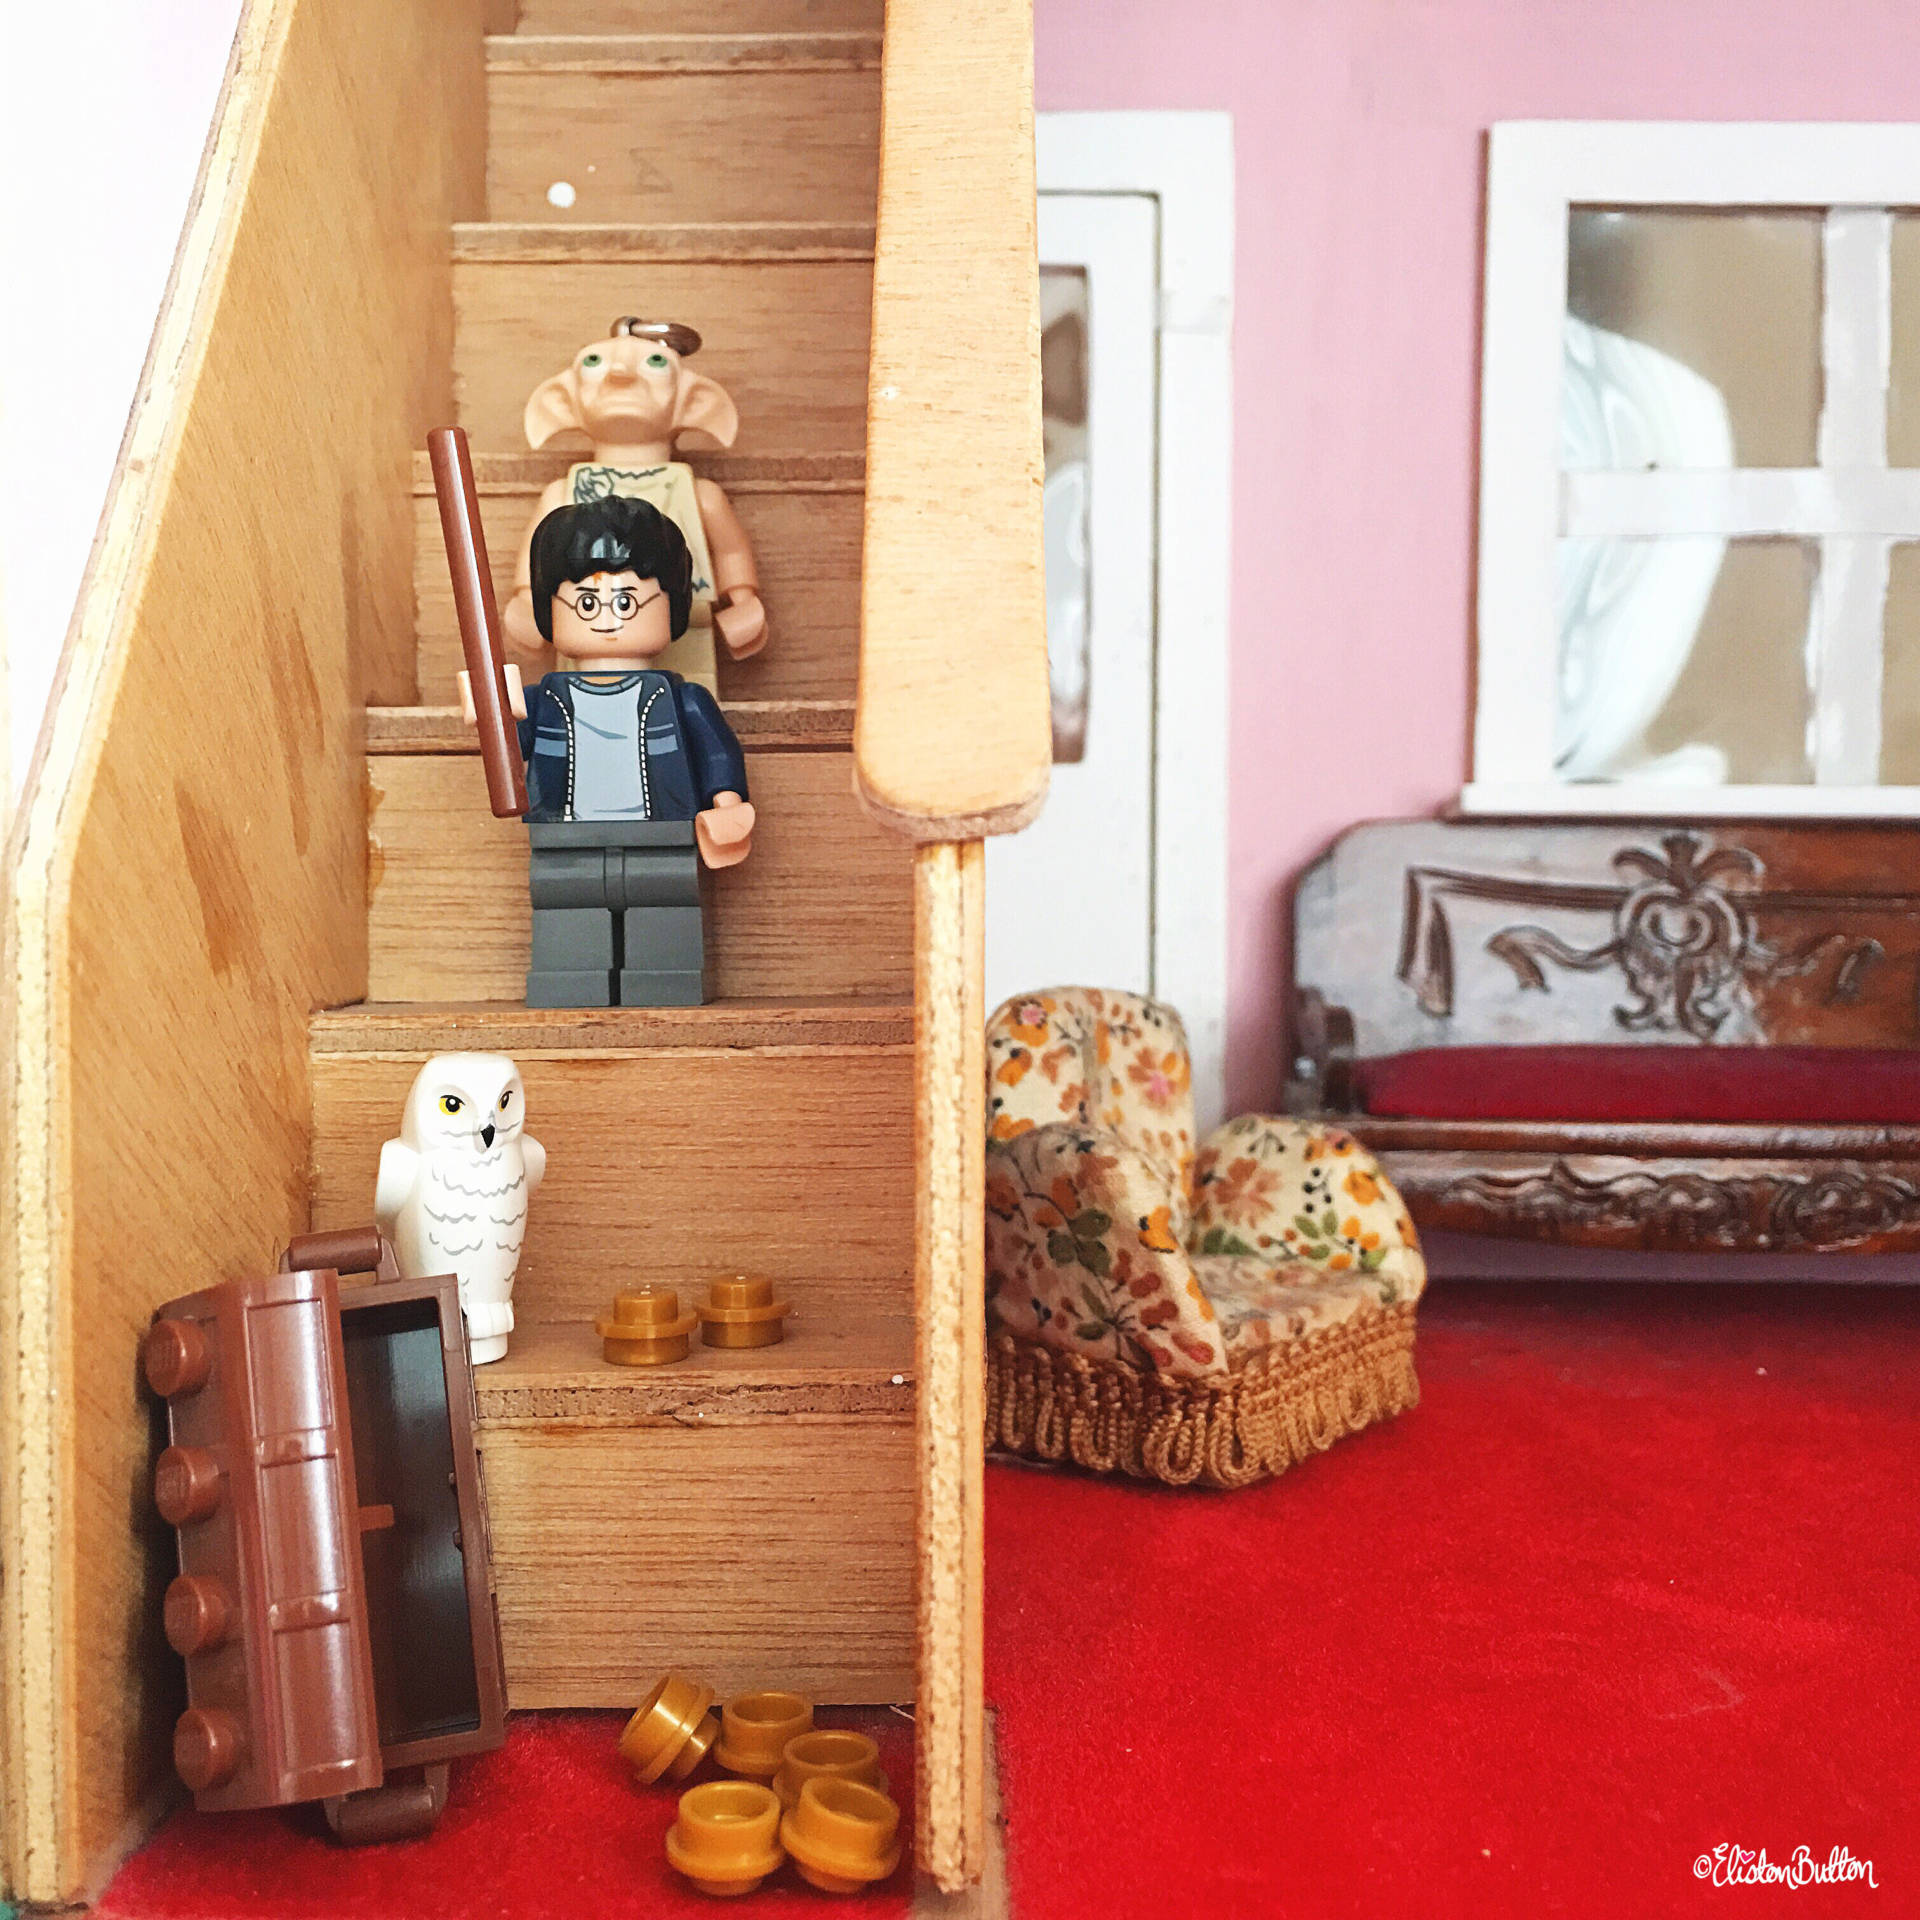 Day 12 - Stairs - Harry Potter, Hedwig and Dobby Lego Minifigures in a Dolls House - Photo-a-Day – June 2016 at www.elistonbutton.com - Eliston Button - That Crafty Kid – Art, Design, Craft & Adventure.